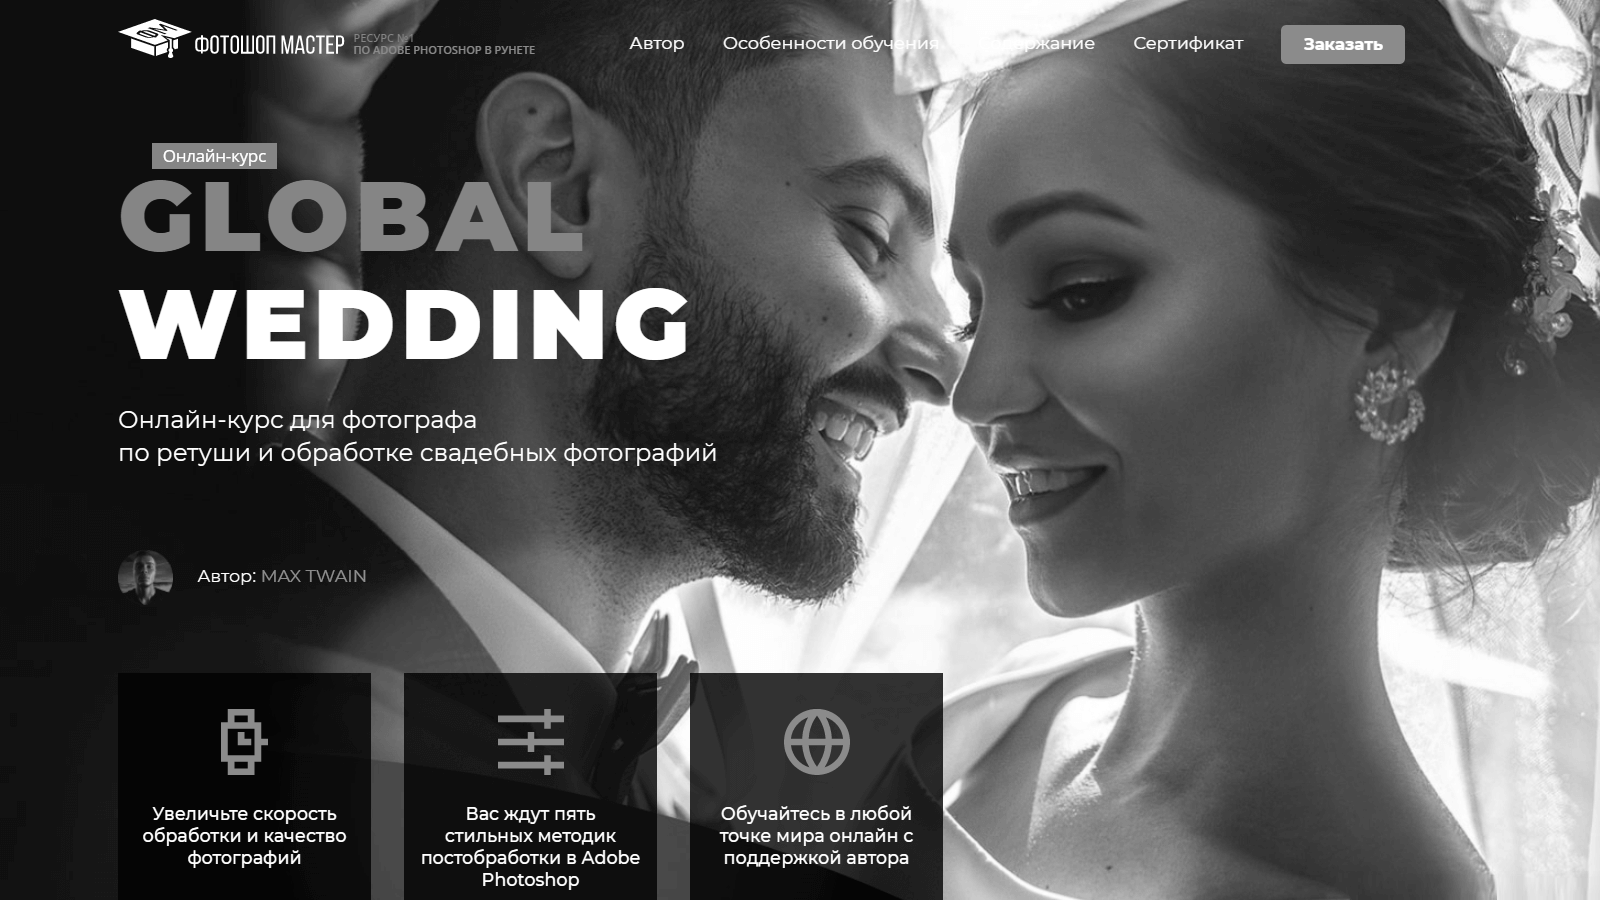 Global Wedding курс фотографии